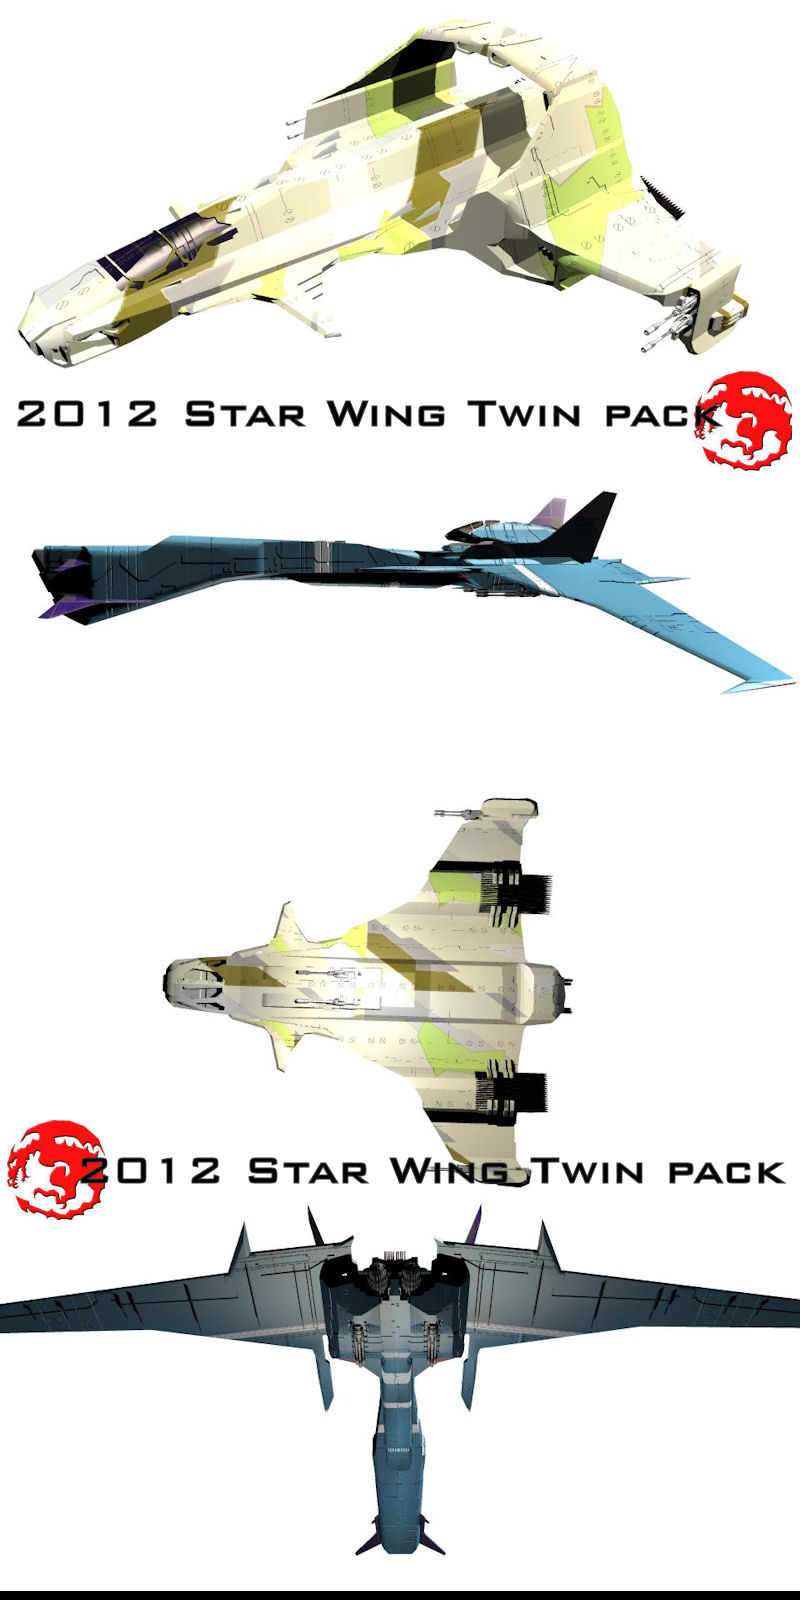 2012 Star Wing Twin Pack